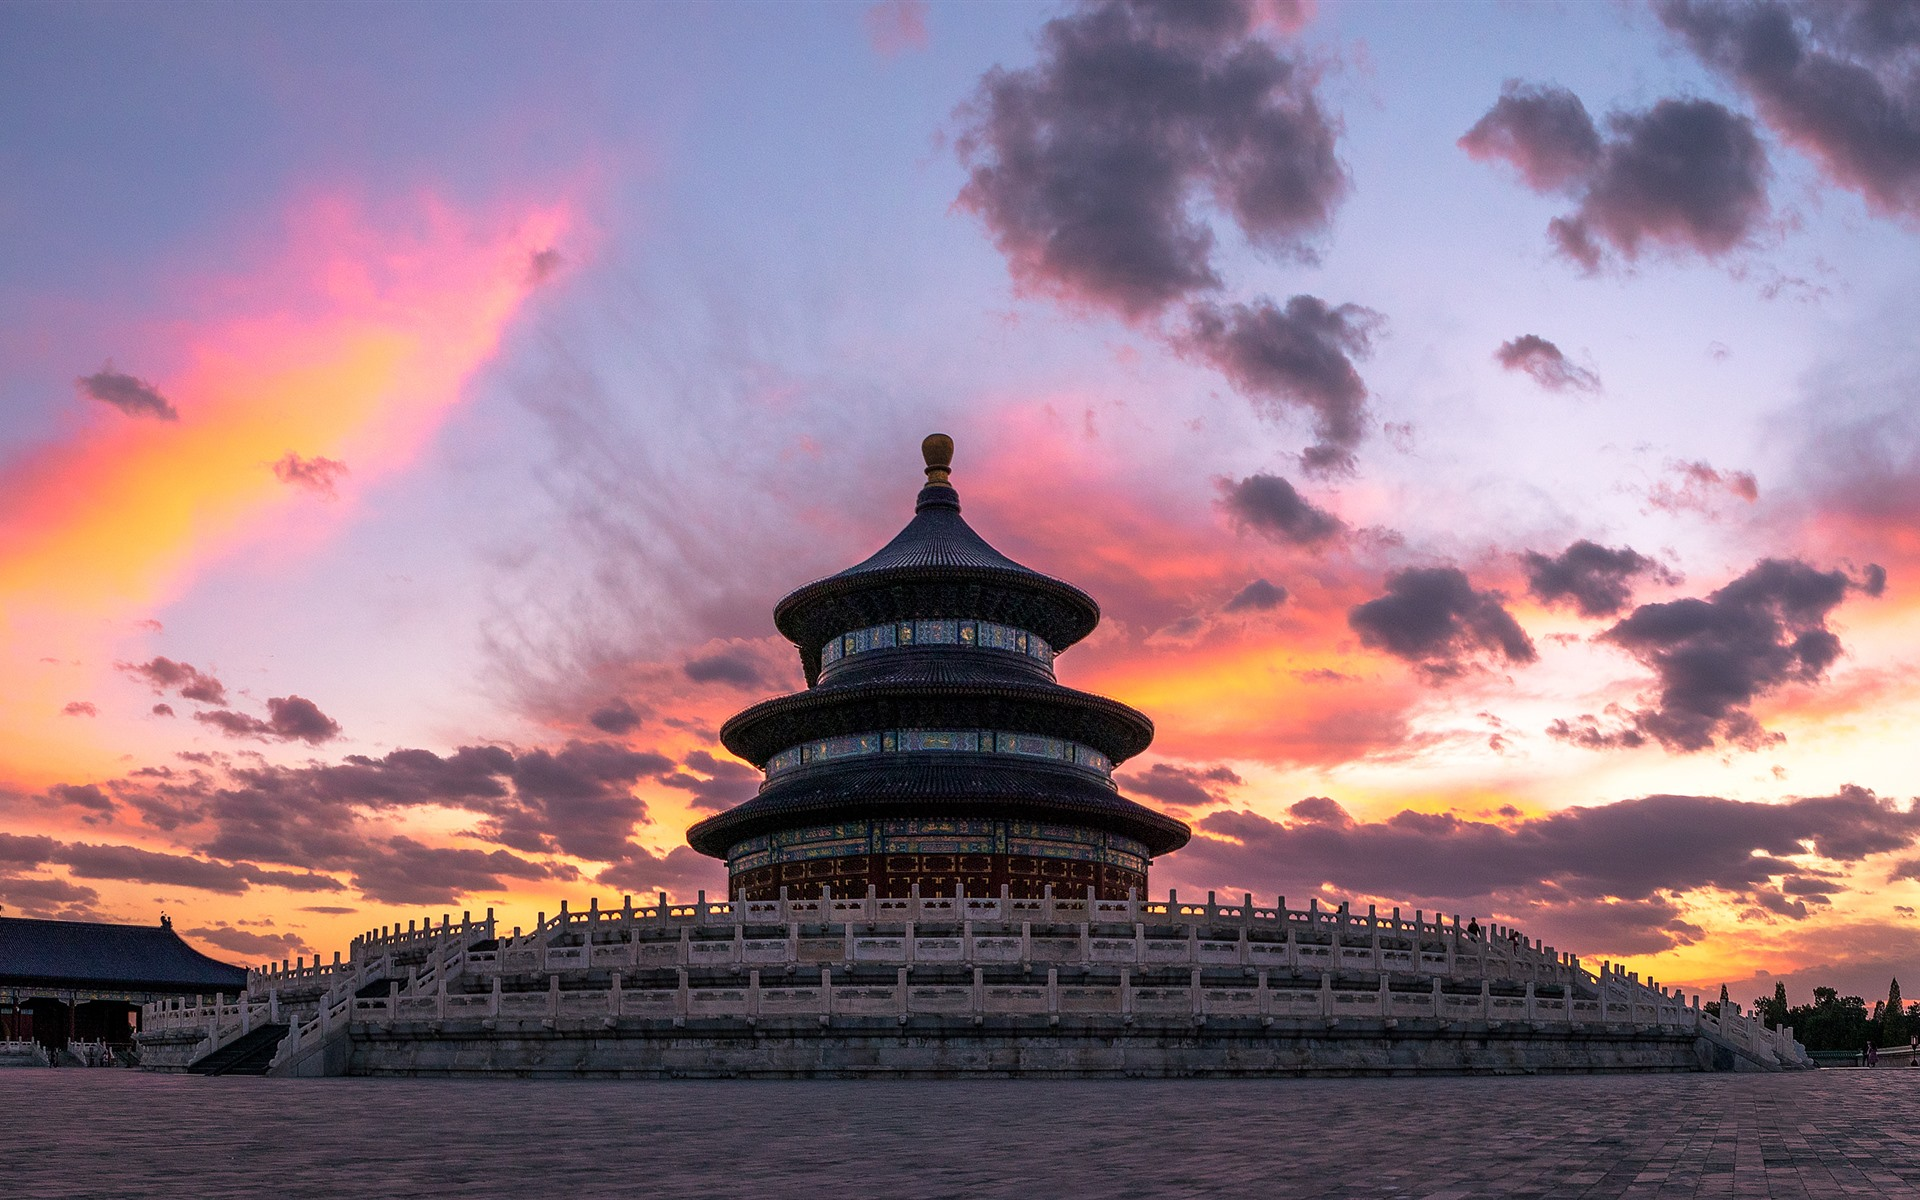 Wallpaper Temple Of Heaven Beijing China 2560x1600 Hd